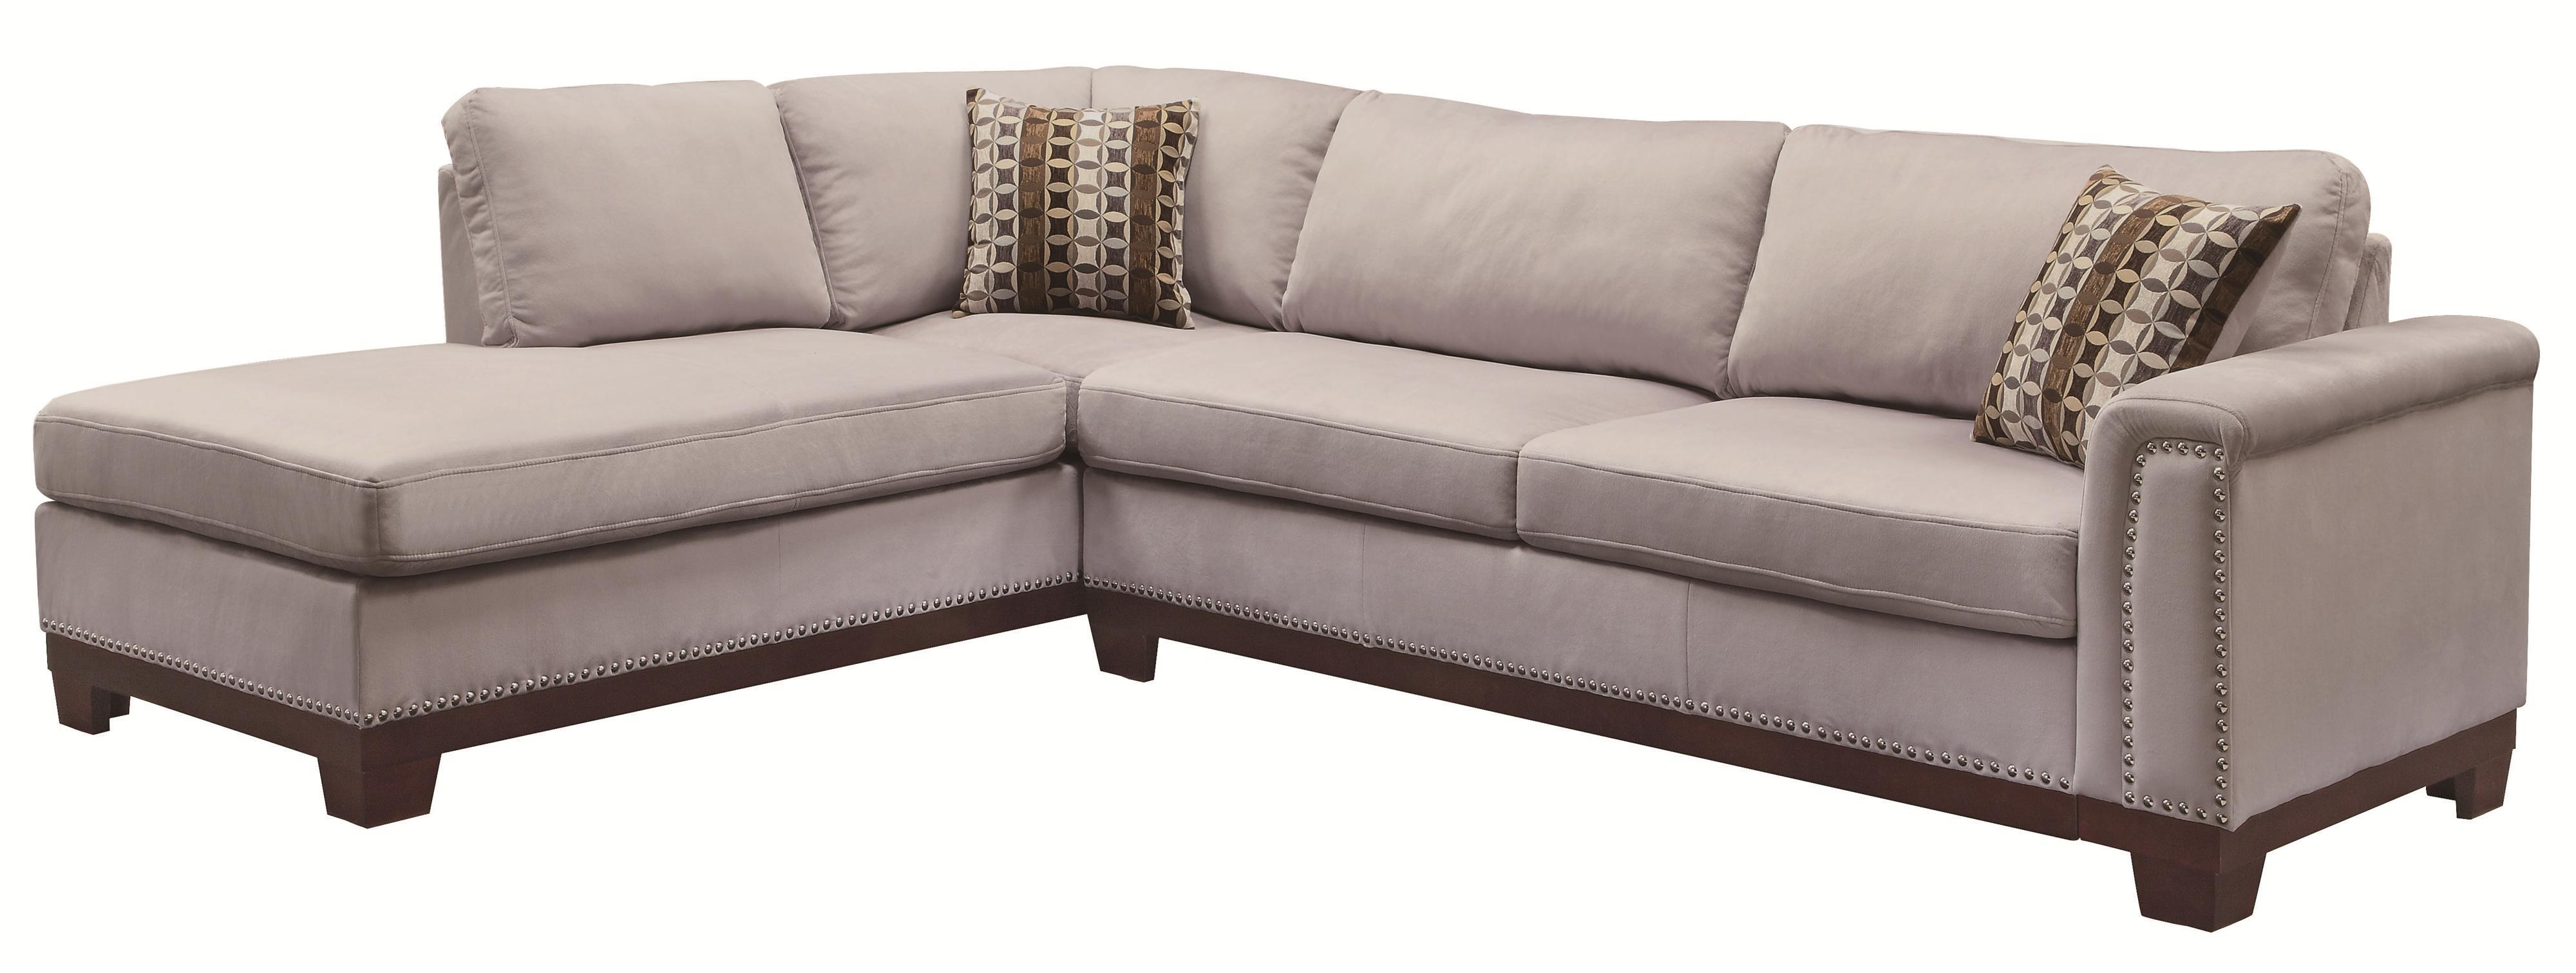 Sofa: Cool Couches For Provides A Warm To Comfortable Feel And Low Pertaining To Inexpensive Sectionals (Image 20 of 20)